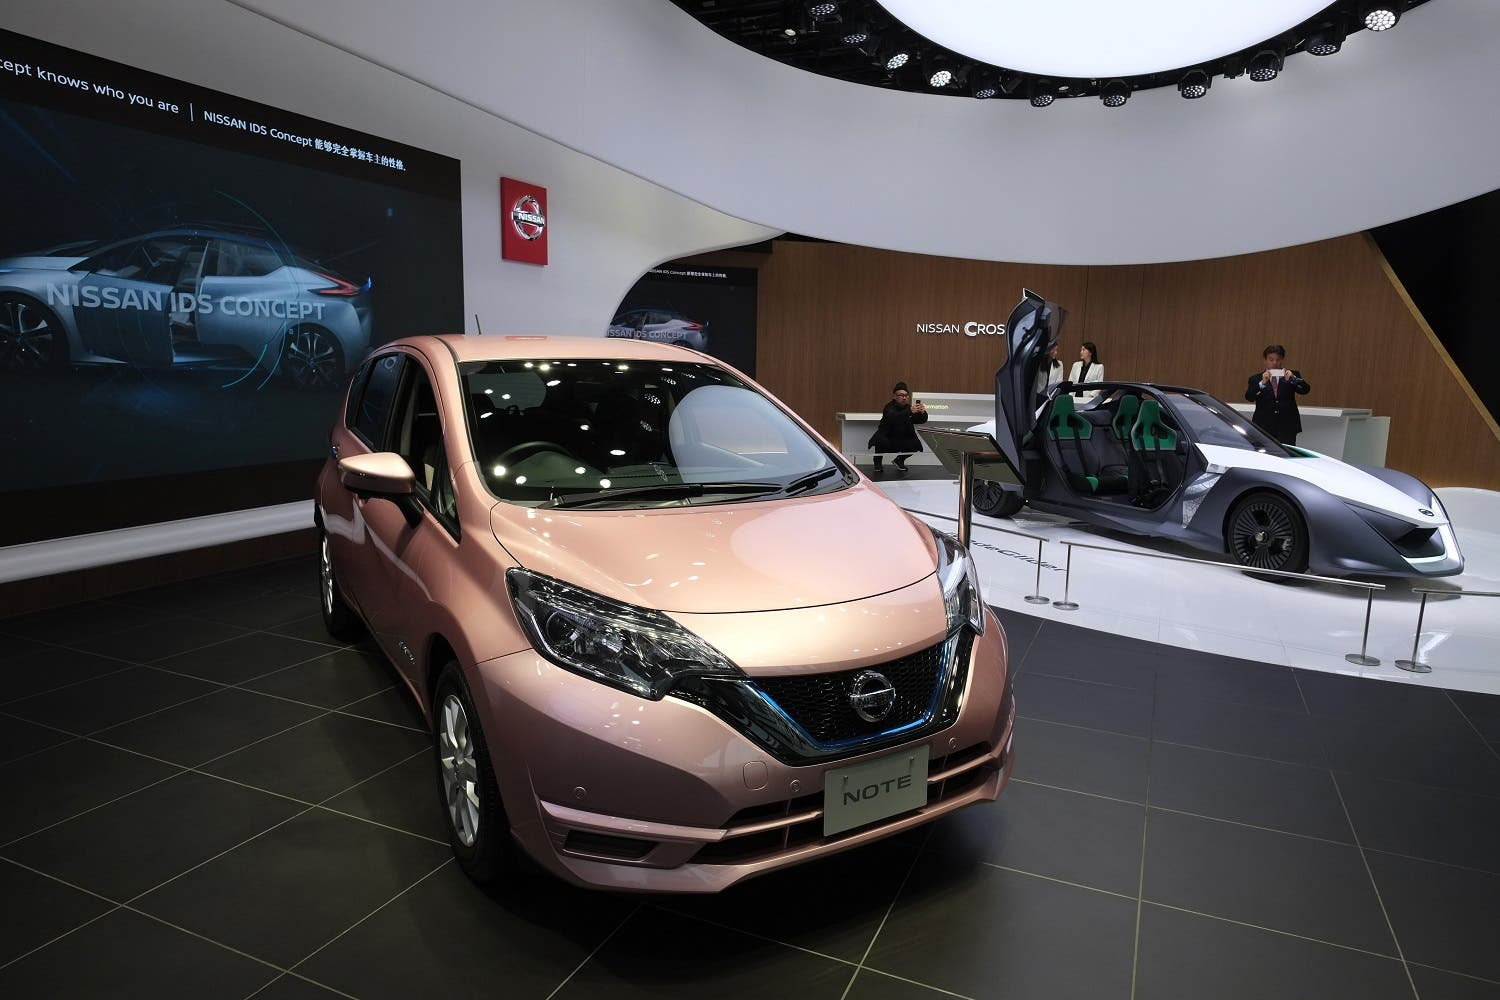 Nissan Motor's latest passenger vehicle 'Note' (L) and an electric concept vehicle 'BladeGlider' (R) are displayed at a showroom in Tokyo on February 23, 2017. (AFP)